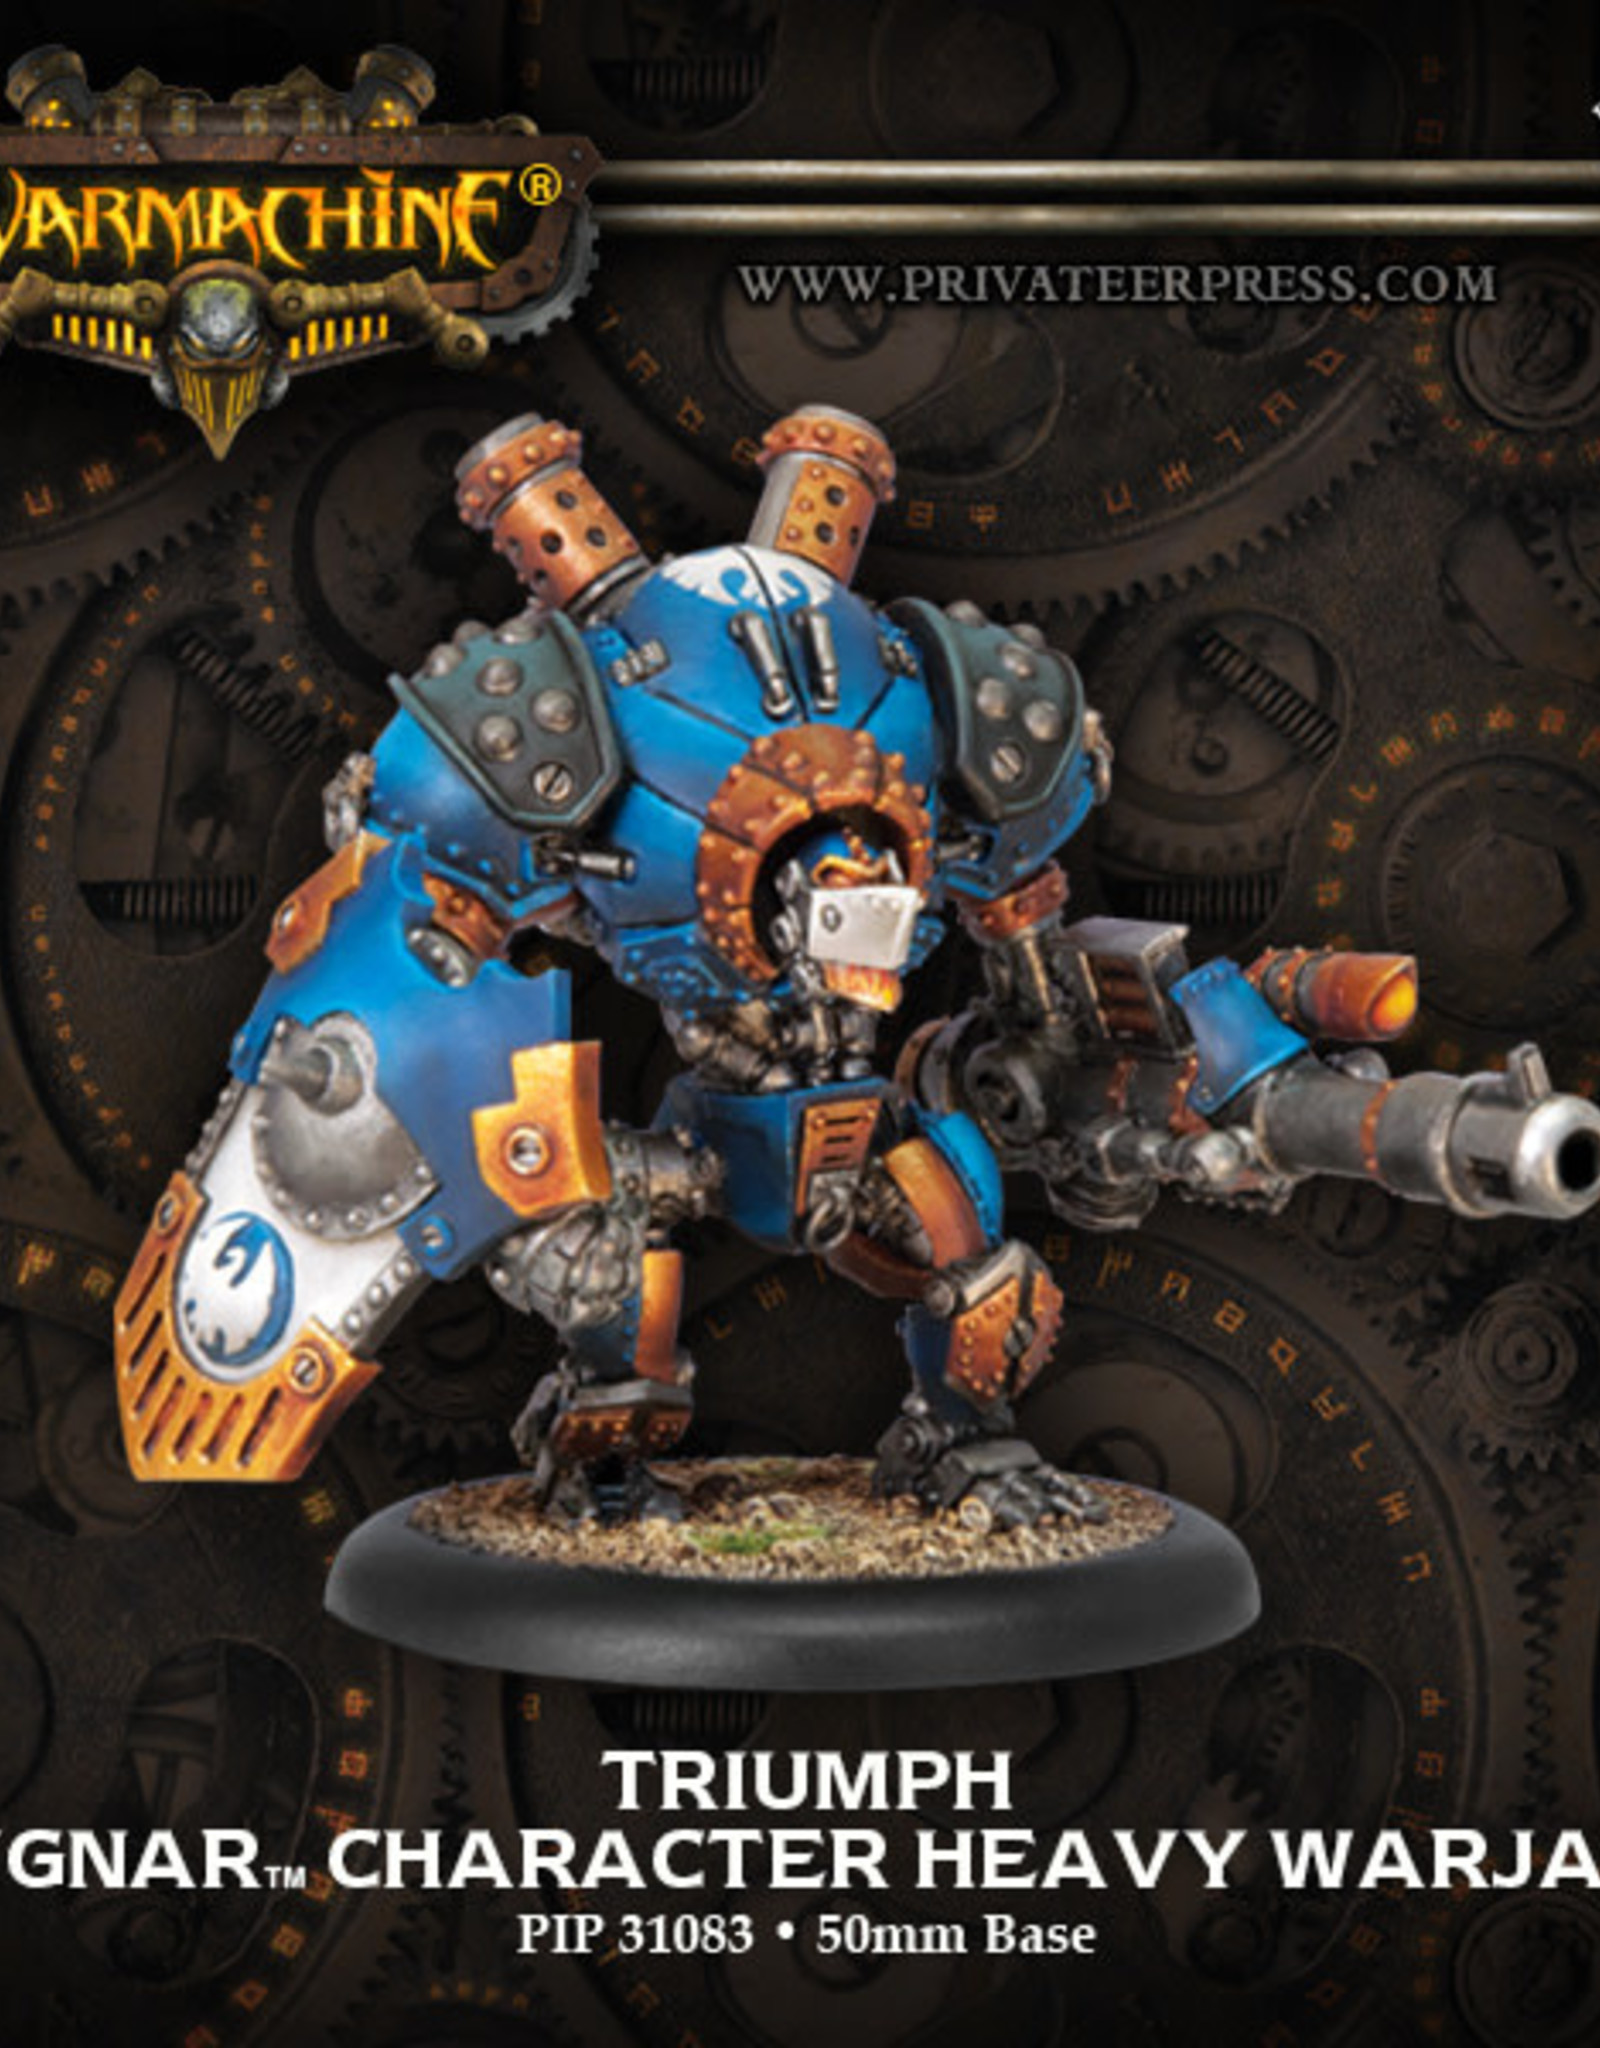 Warmachine Cygnar - Triumph Kit